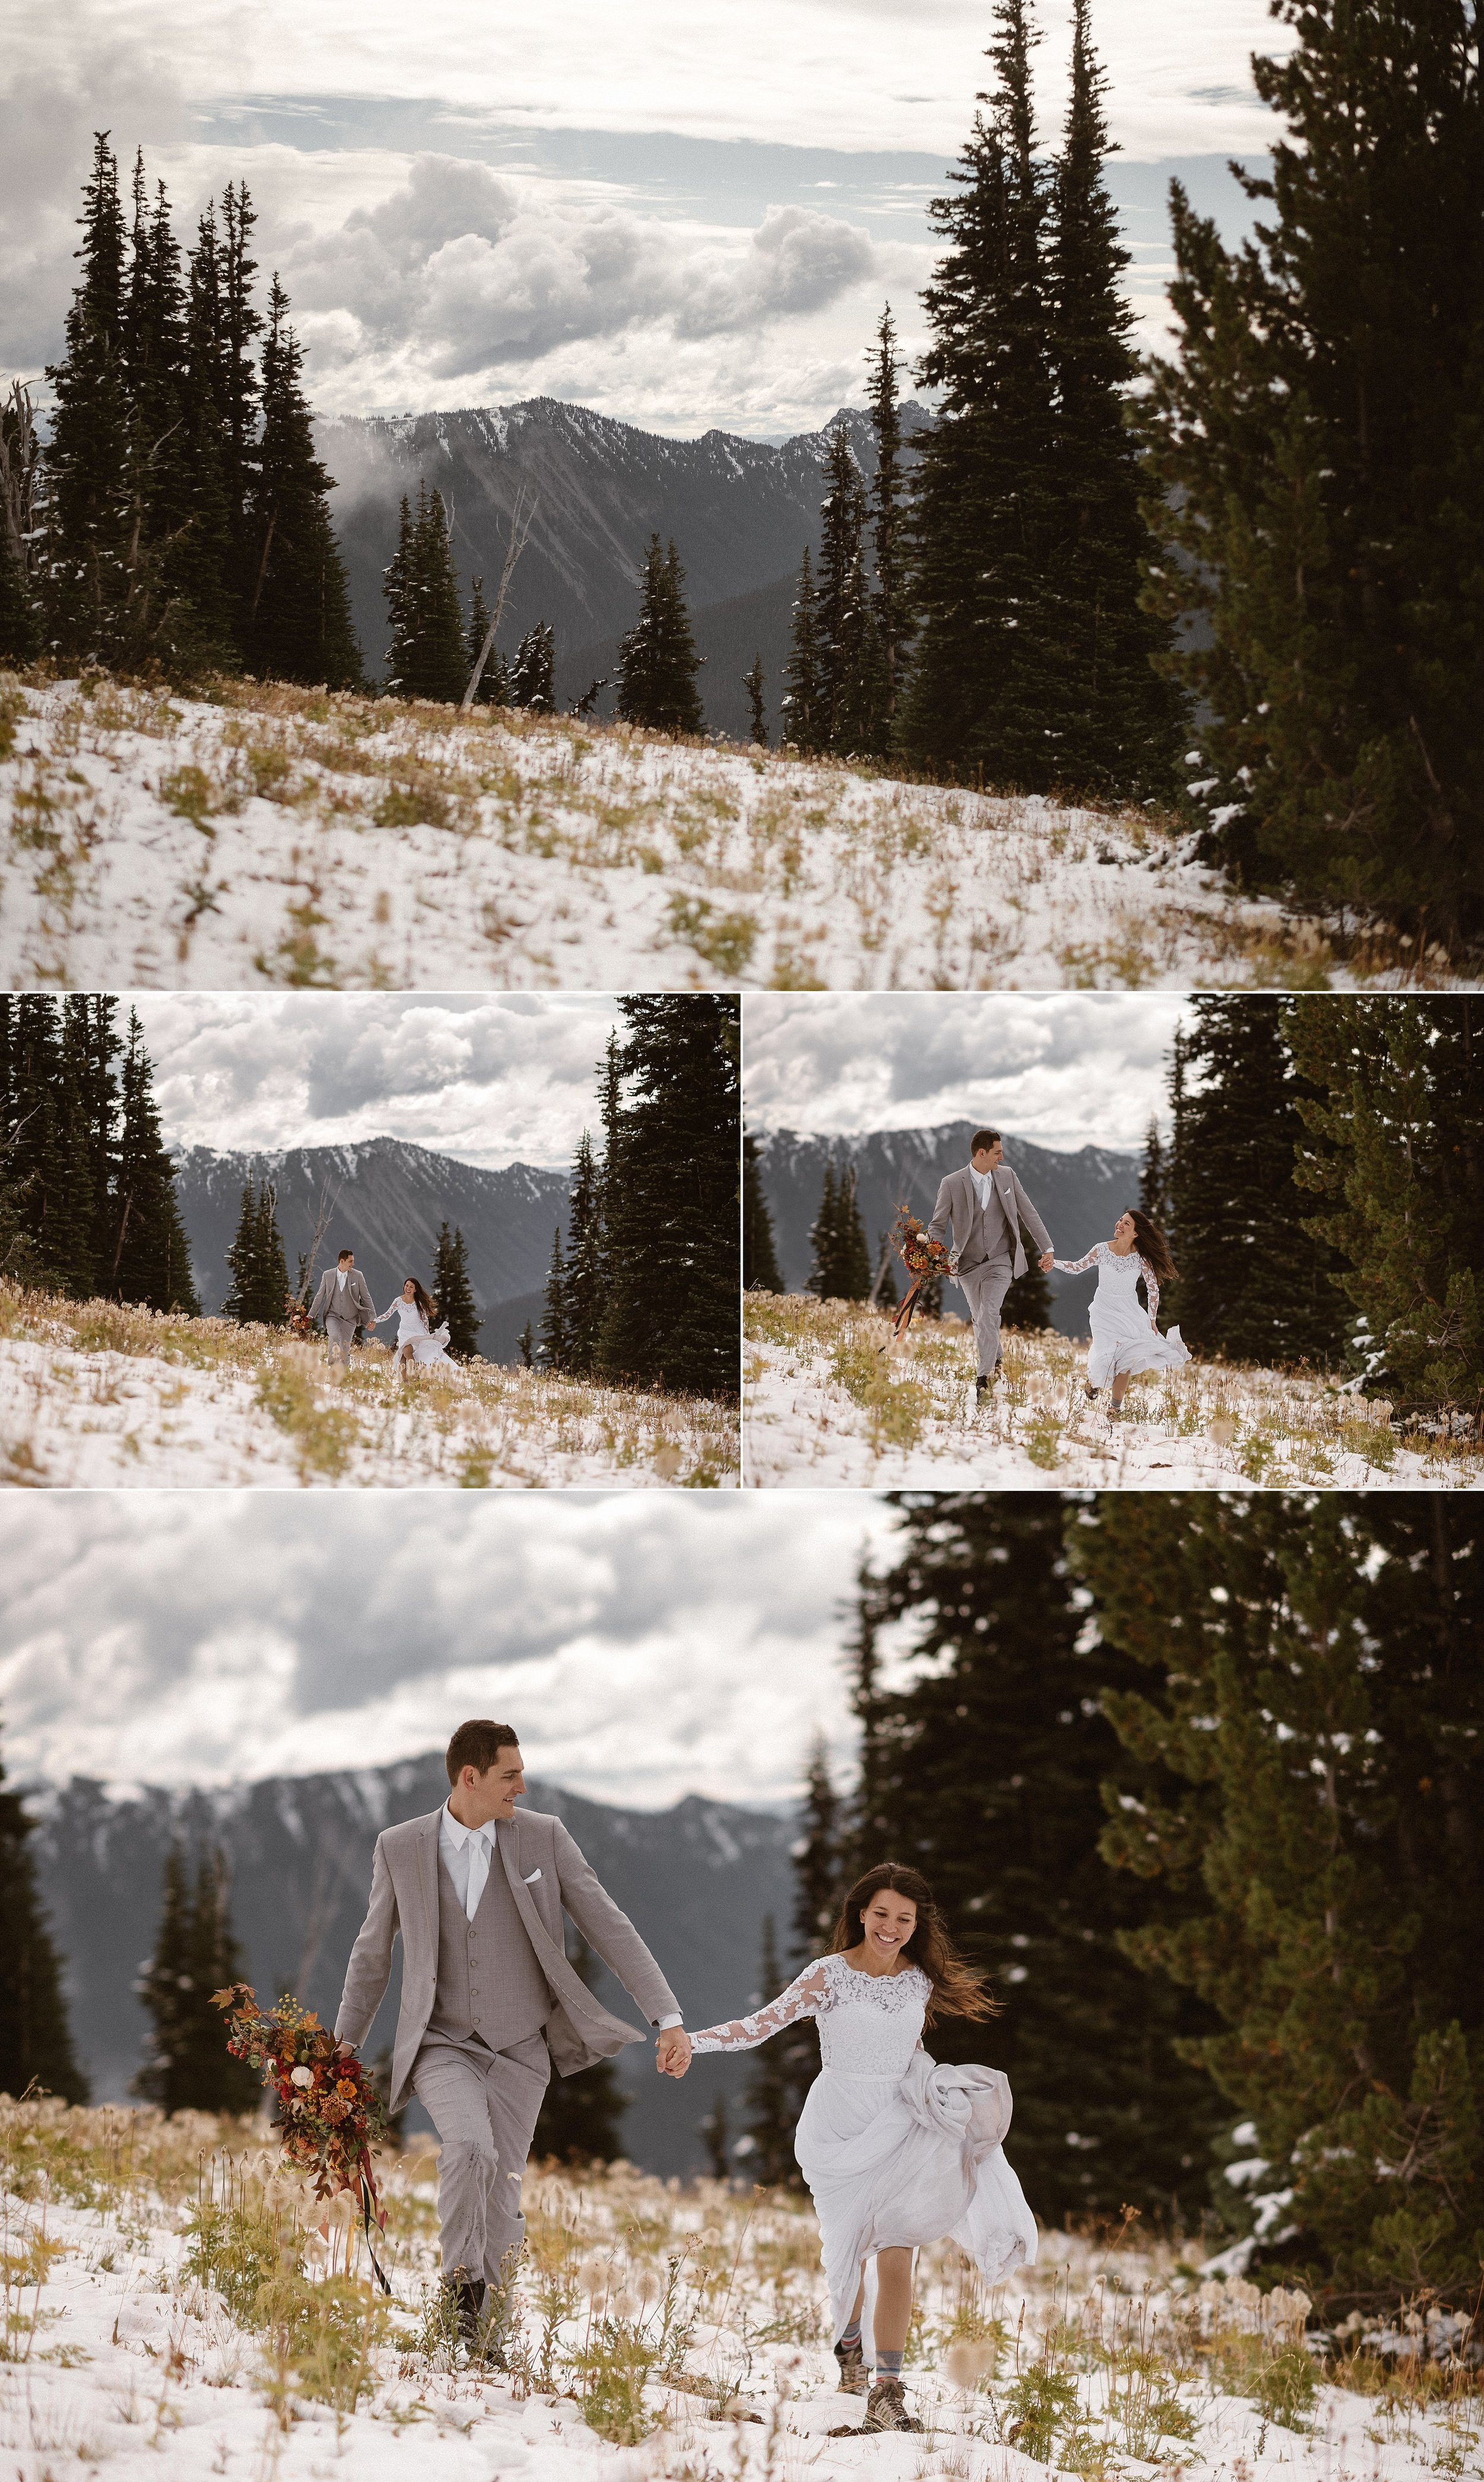 Resa and Grant were all smiles as they hiked through the snow on their intimate elopement day at Mount Rainier National Park. Although their previous plans of eloping in other locations around Washington state were foiled by weather and natural disaster, this adventurous couple took it in stride and found the most perfect location in the forest to say their vows. Photos of this romantic elopement by traveling wedding photographer Maddie Mae.